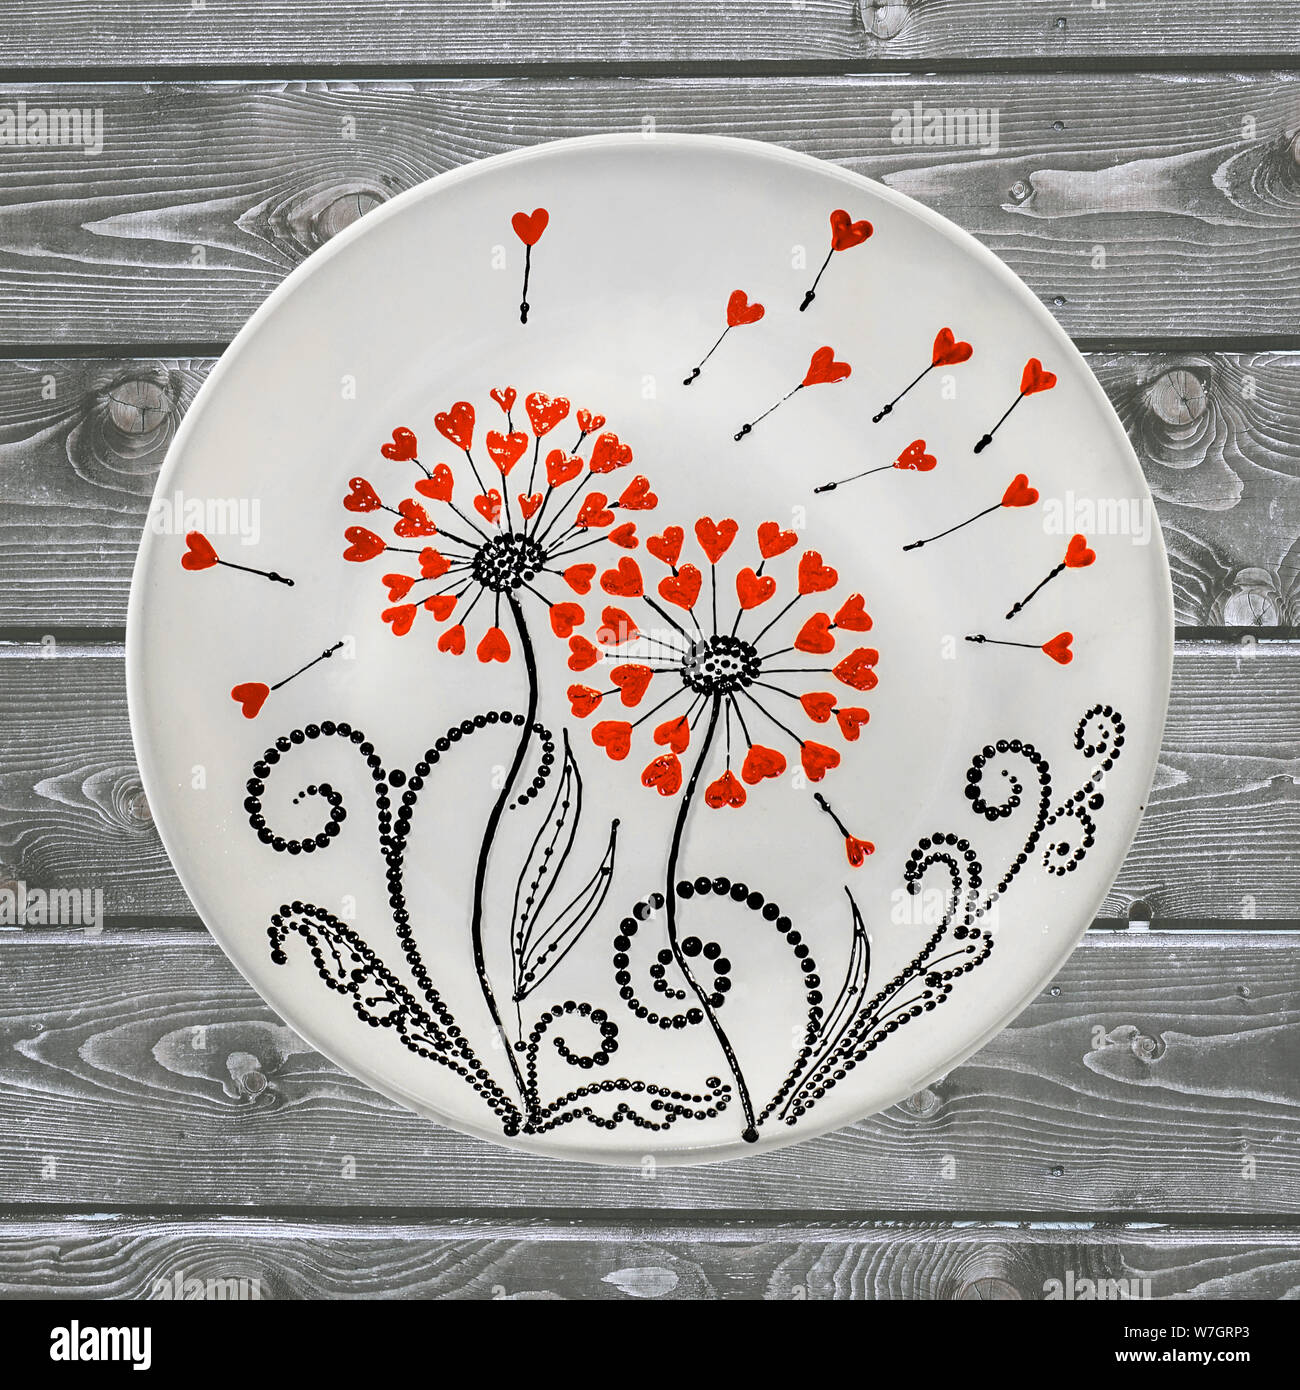 Decorative Ceramic Plate Hand Painted Dot Pattern With Acrylic Paints On A Wooden Background A Square Photo Closeup Stock Photo Alamy